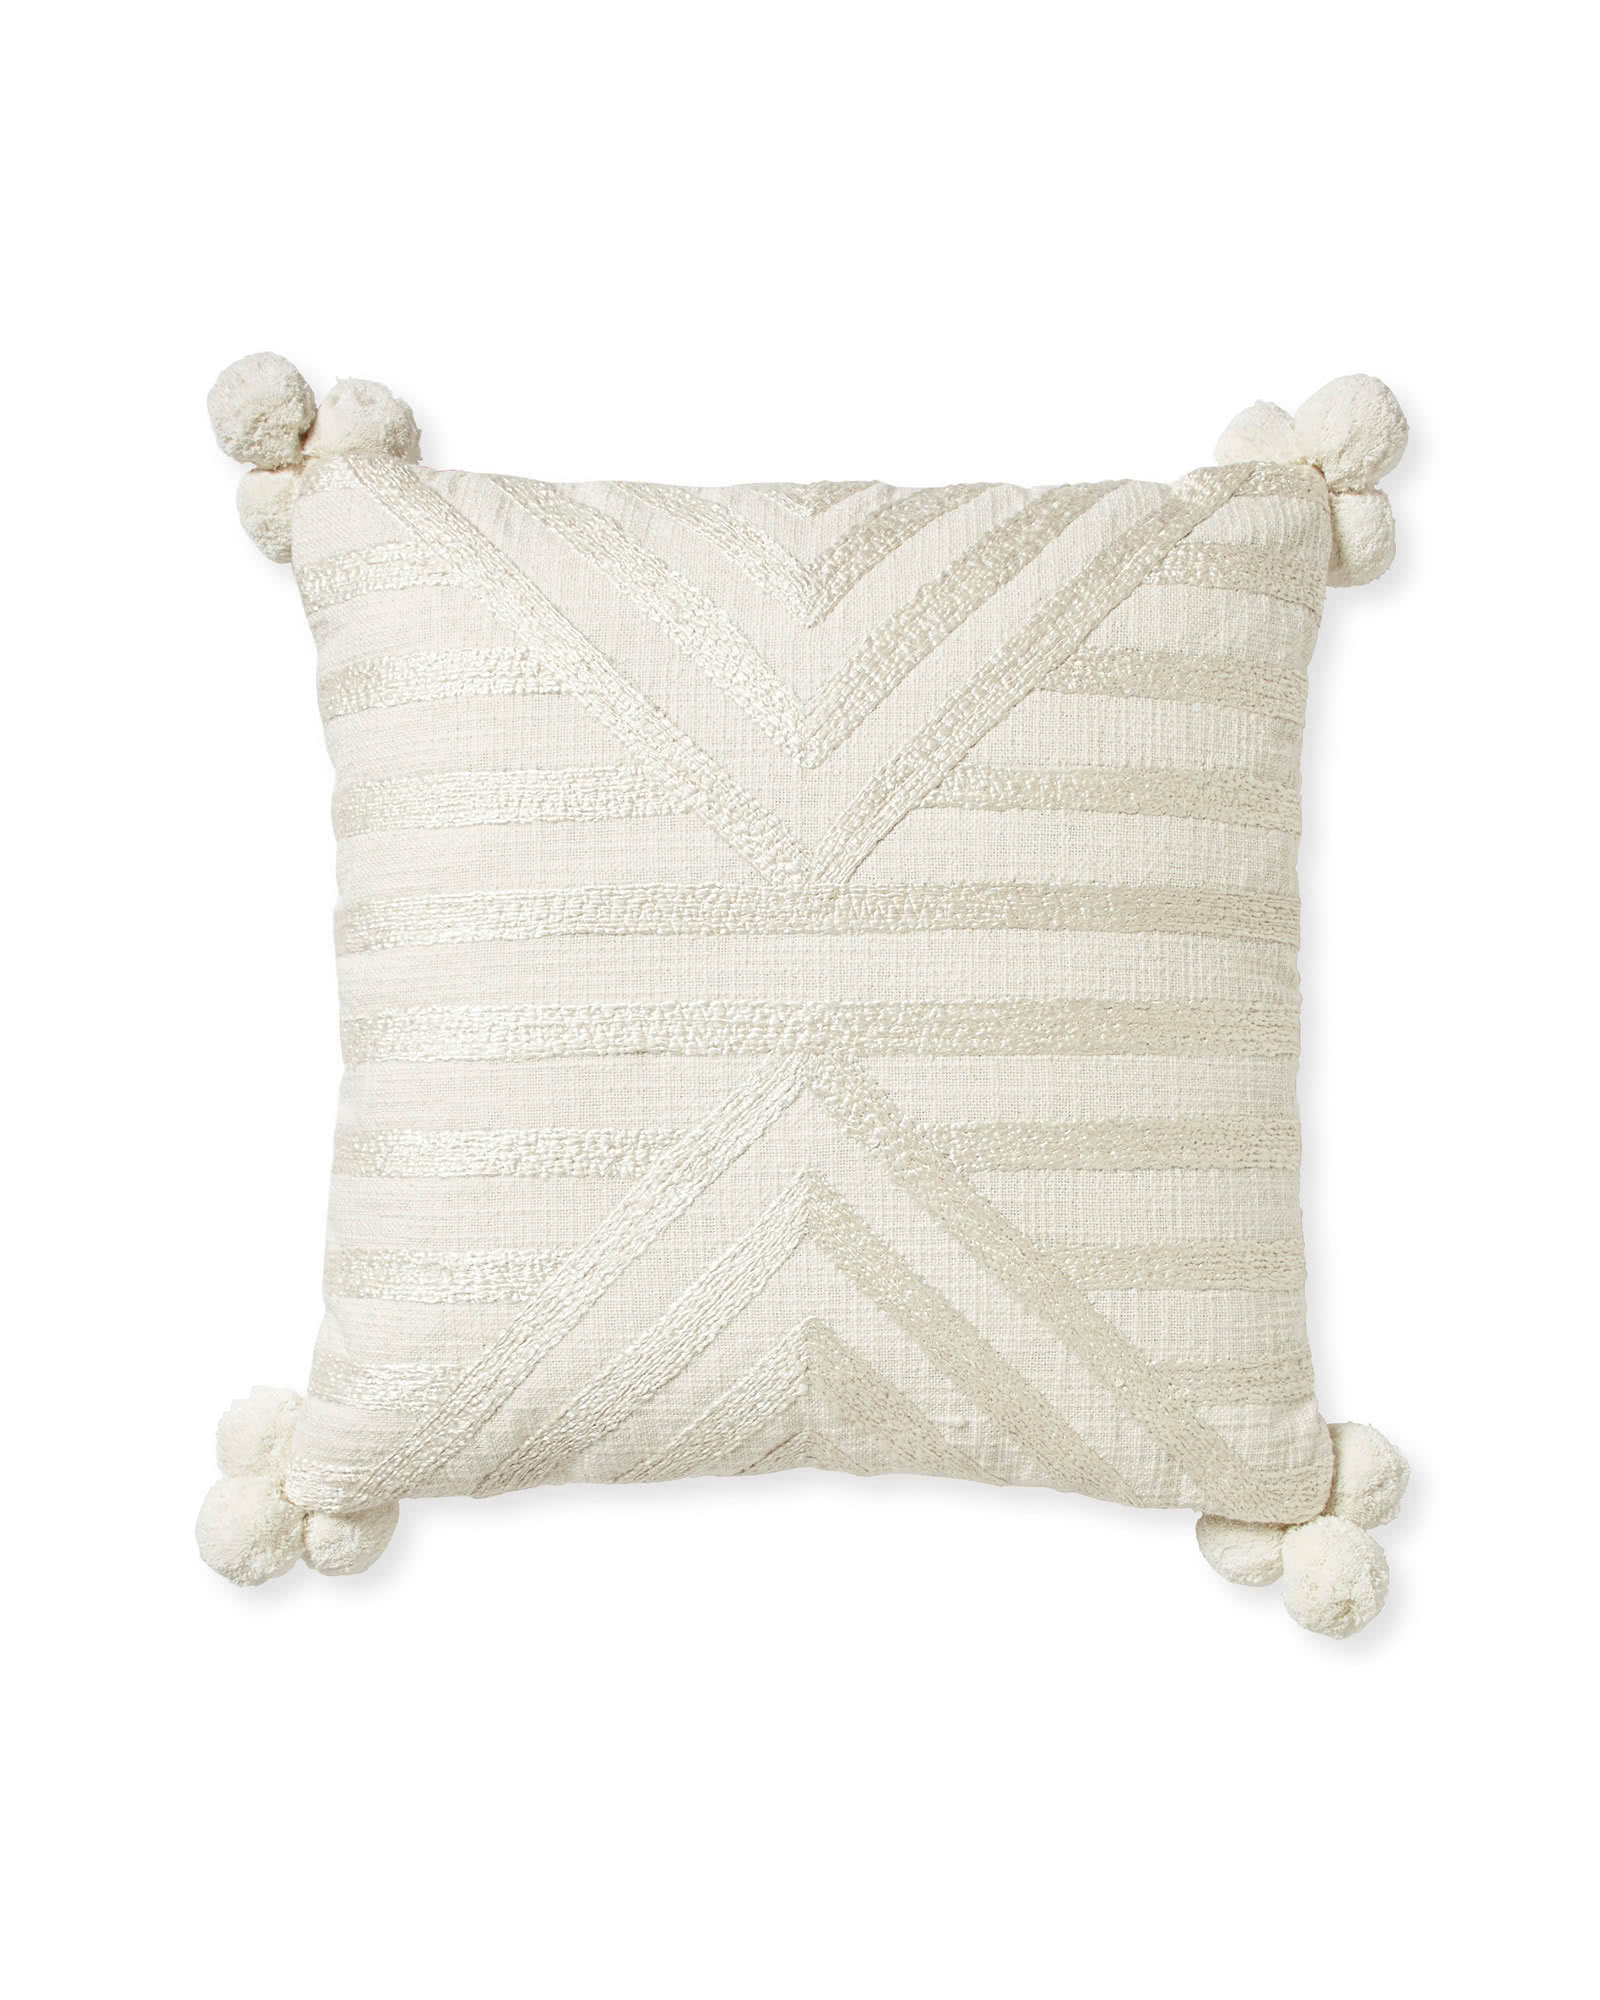 Sarasota Pillow Cover,